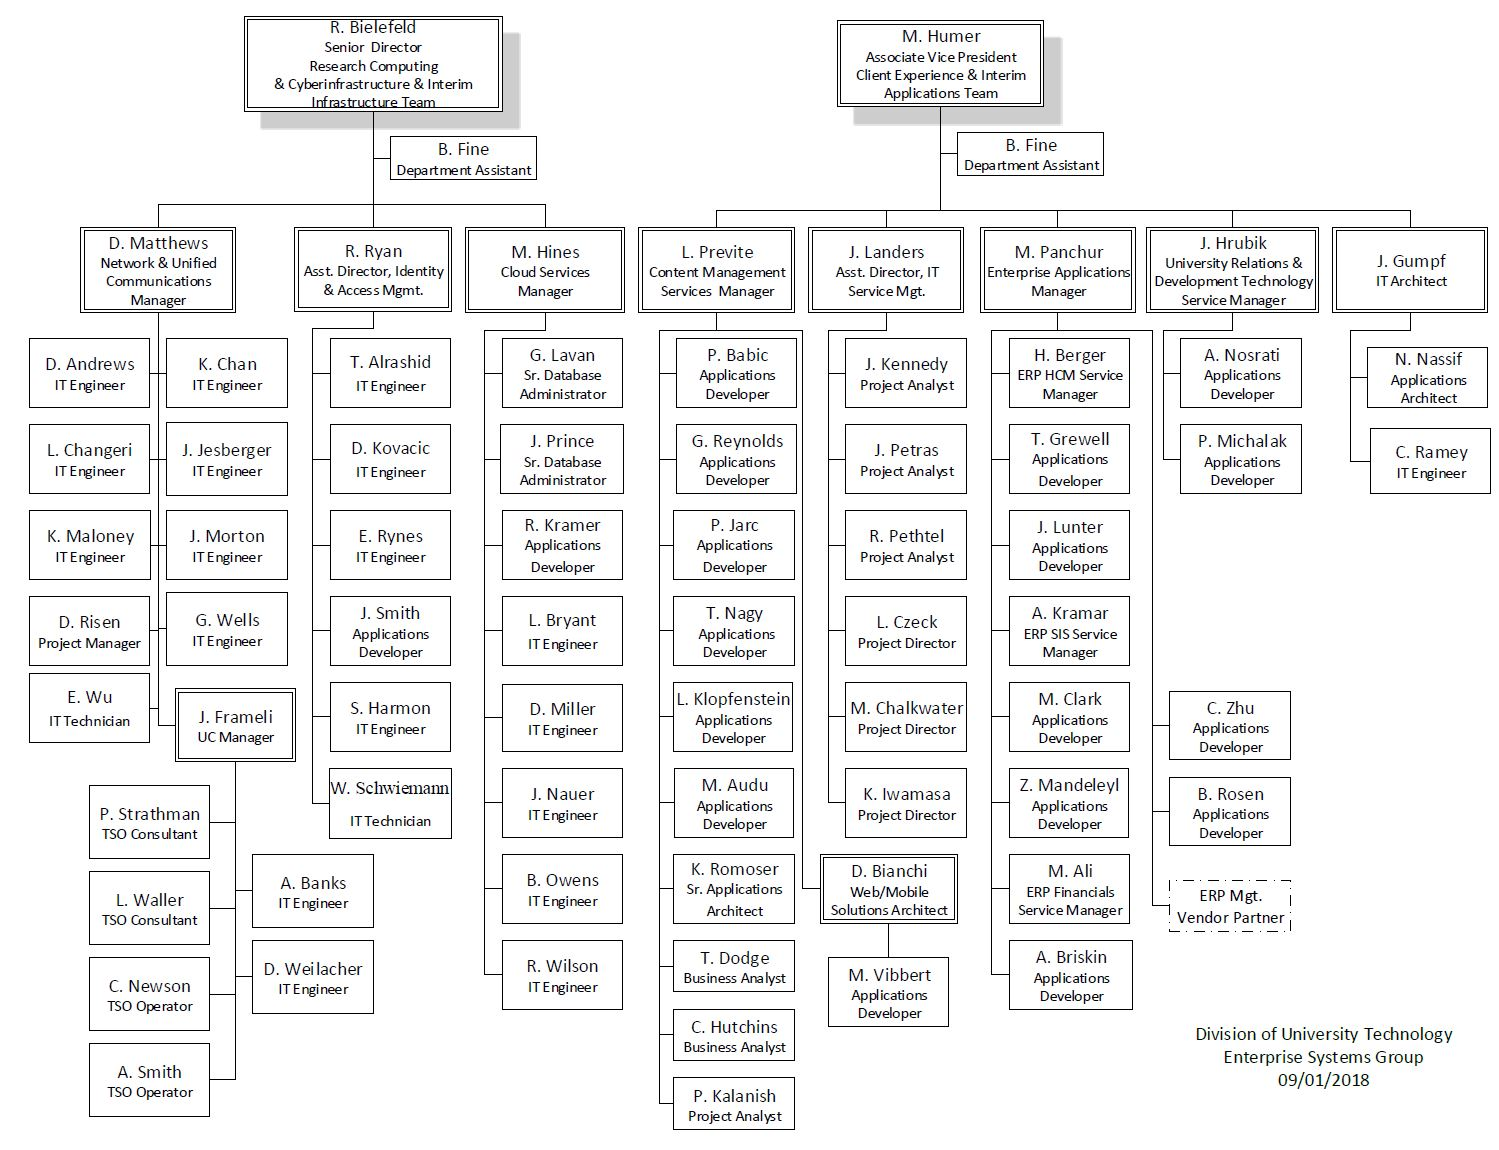 Enterprise Systems Organizational Structure Sep18